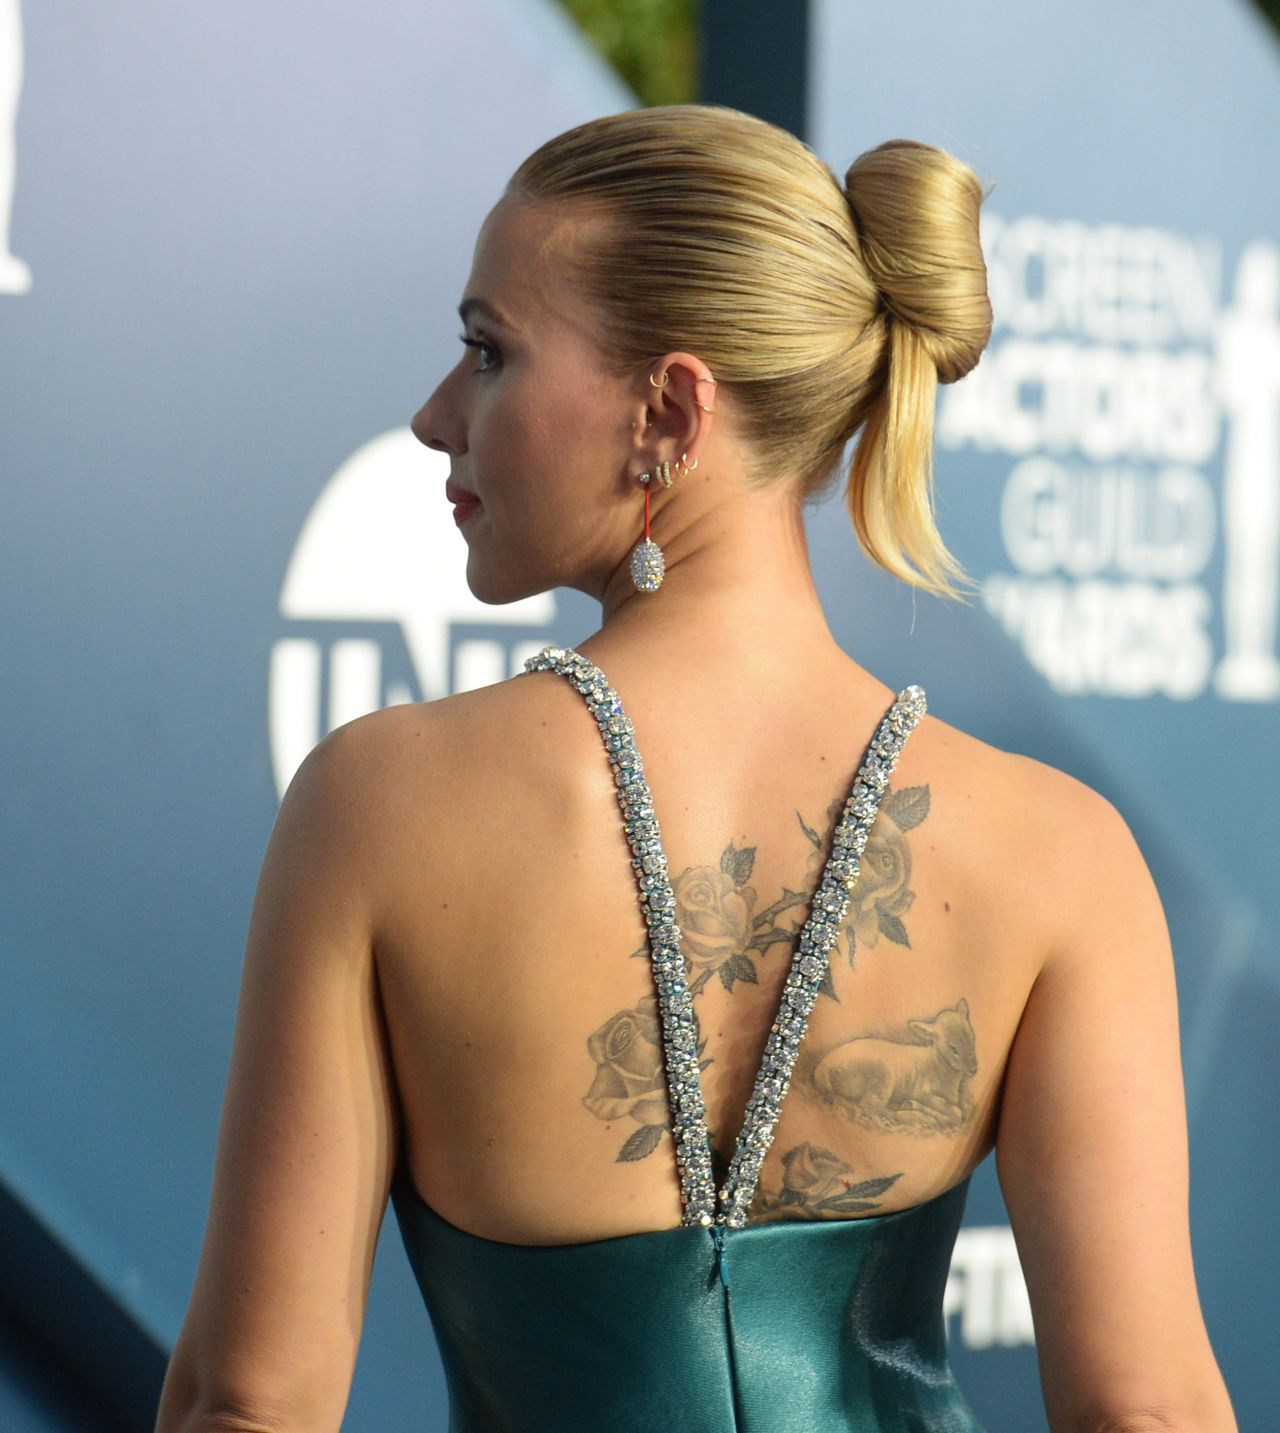 Scarlett Johansson - 26th Annual Screen Actors Guild Awards at the Shrine Auditorium in Los Angeles